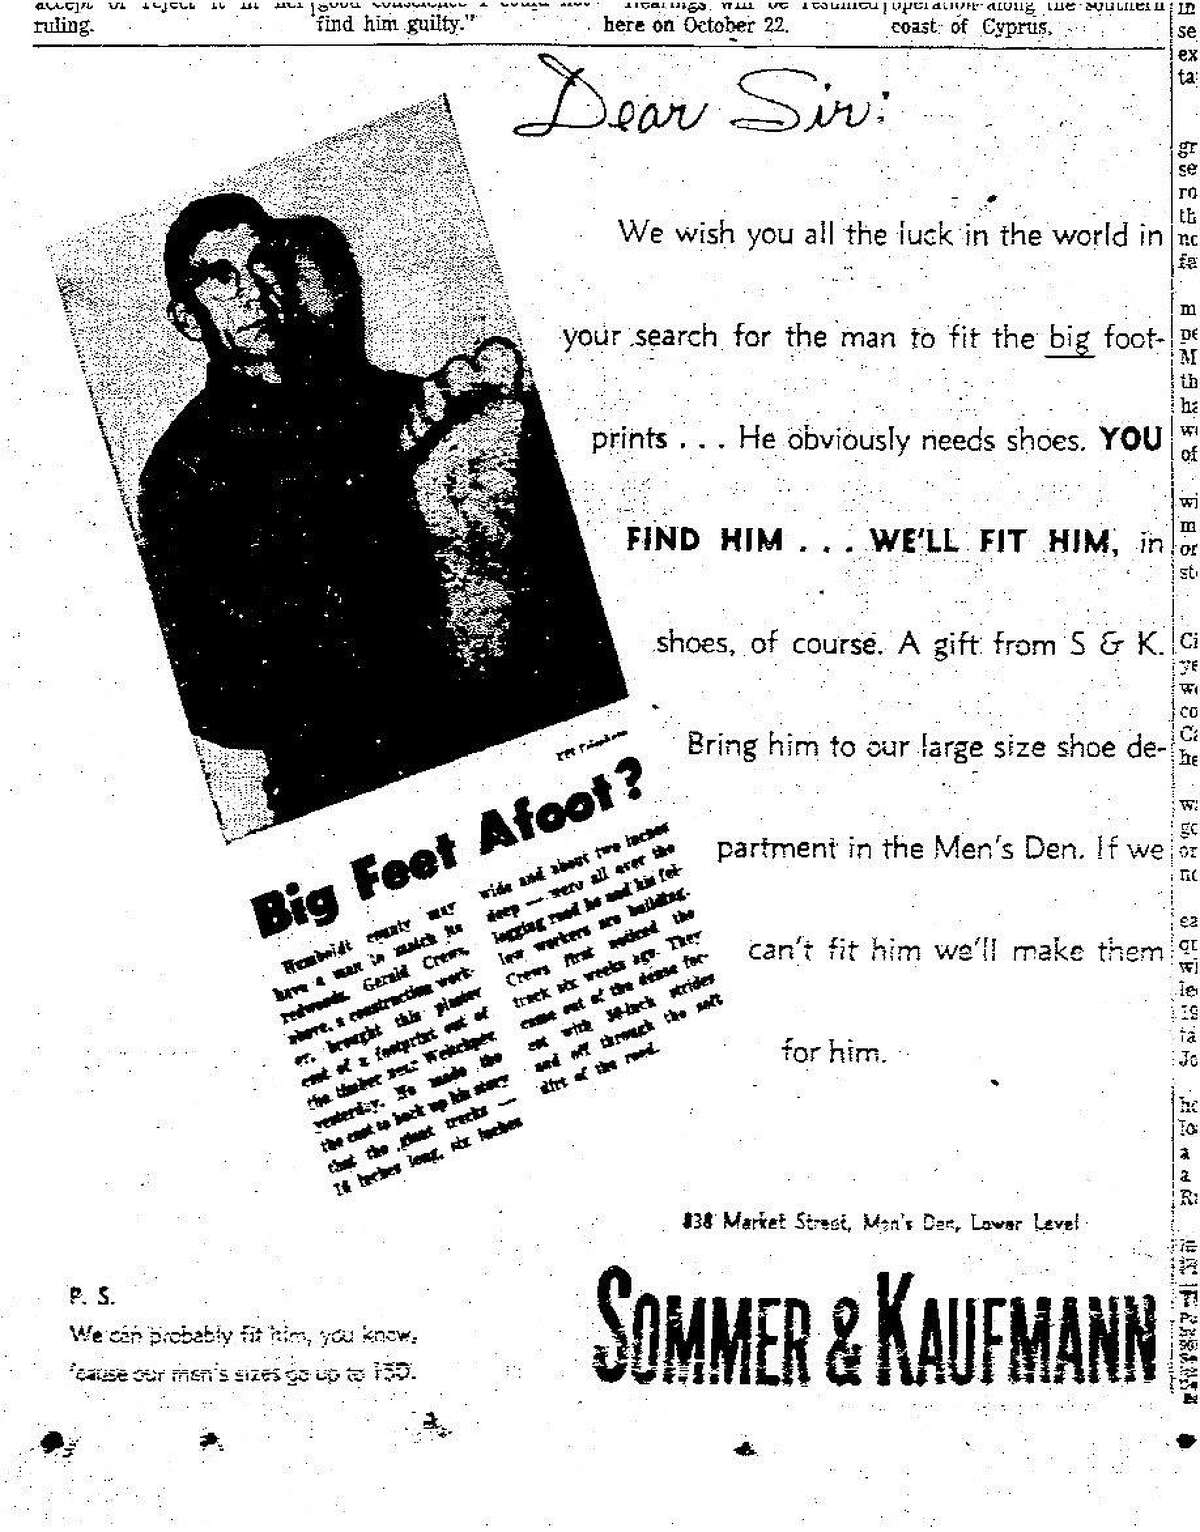 Sommer & Kaufmann a San Francisco shoe store promising to find or makes shoes for creature that made the huge footprints. Gerald Crews found huge footprints at a road construction site near Willow Creek, in Humboldt County October 1958